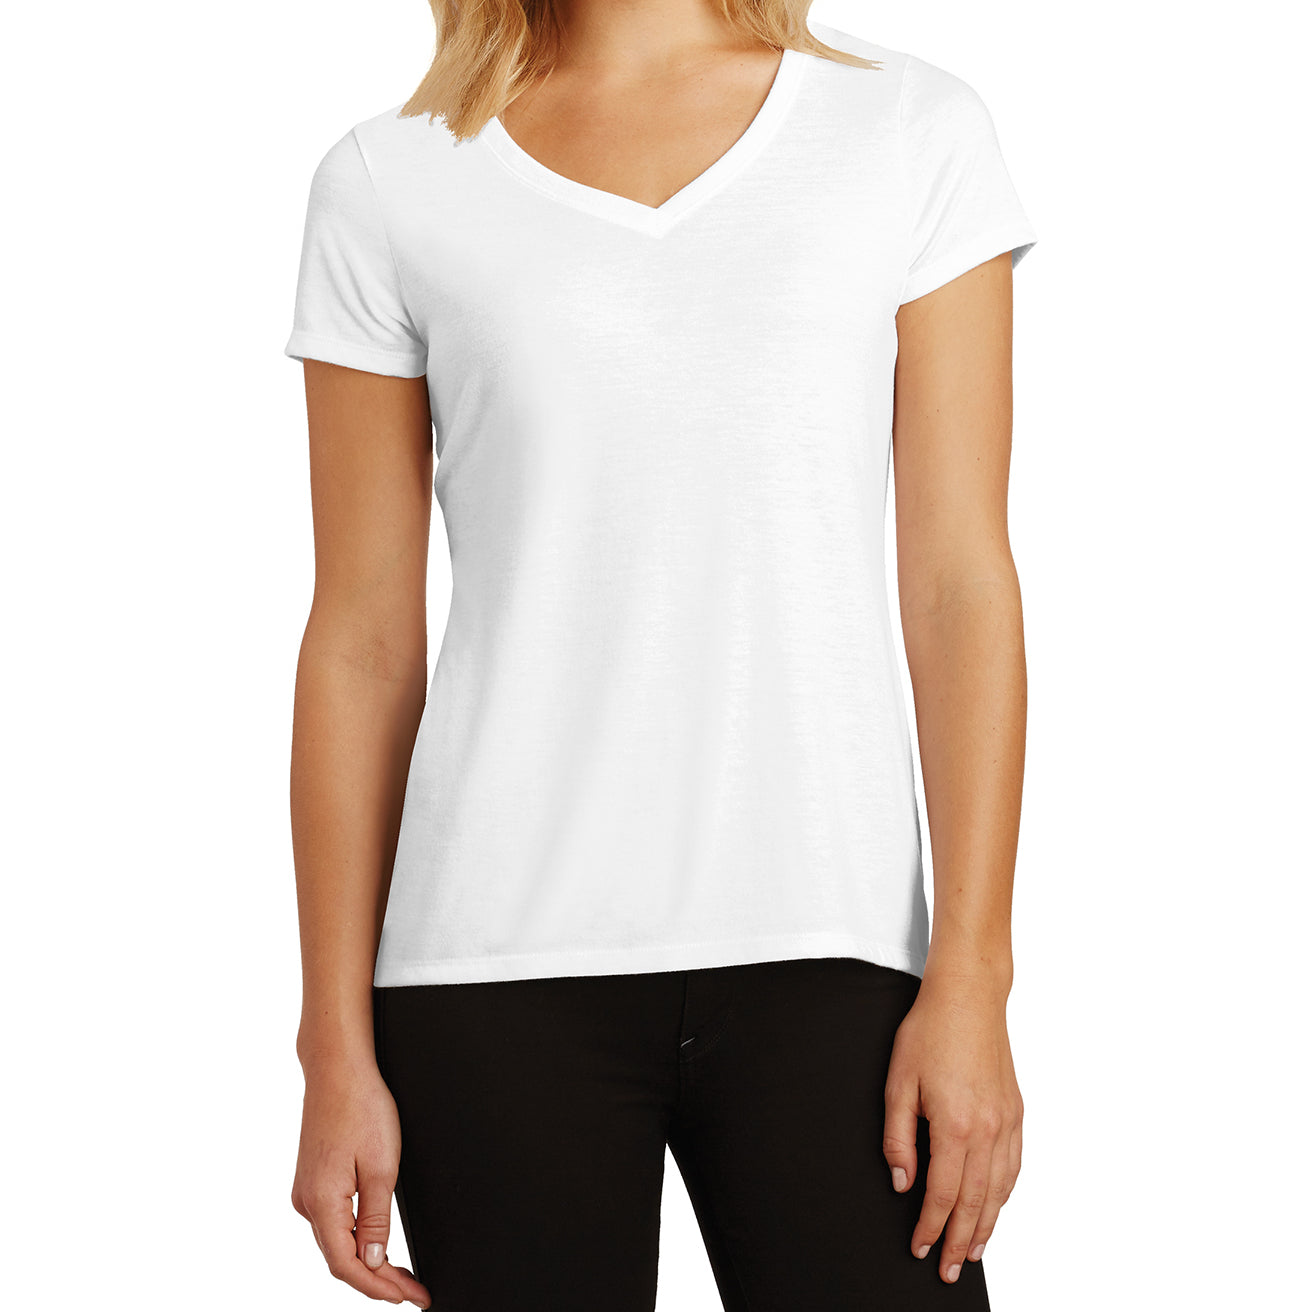 Women's Perfect Tri V-Neck Tee - White - Front